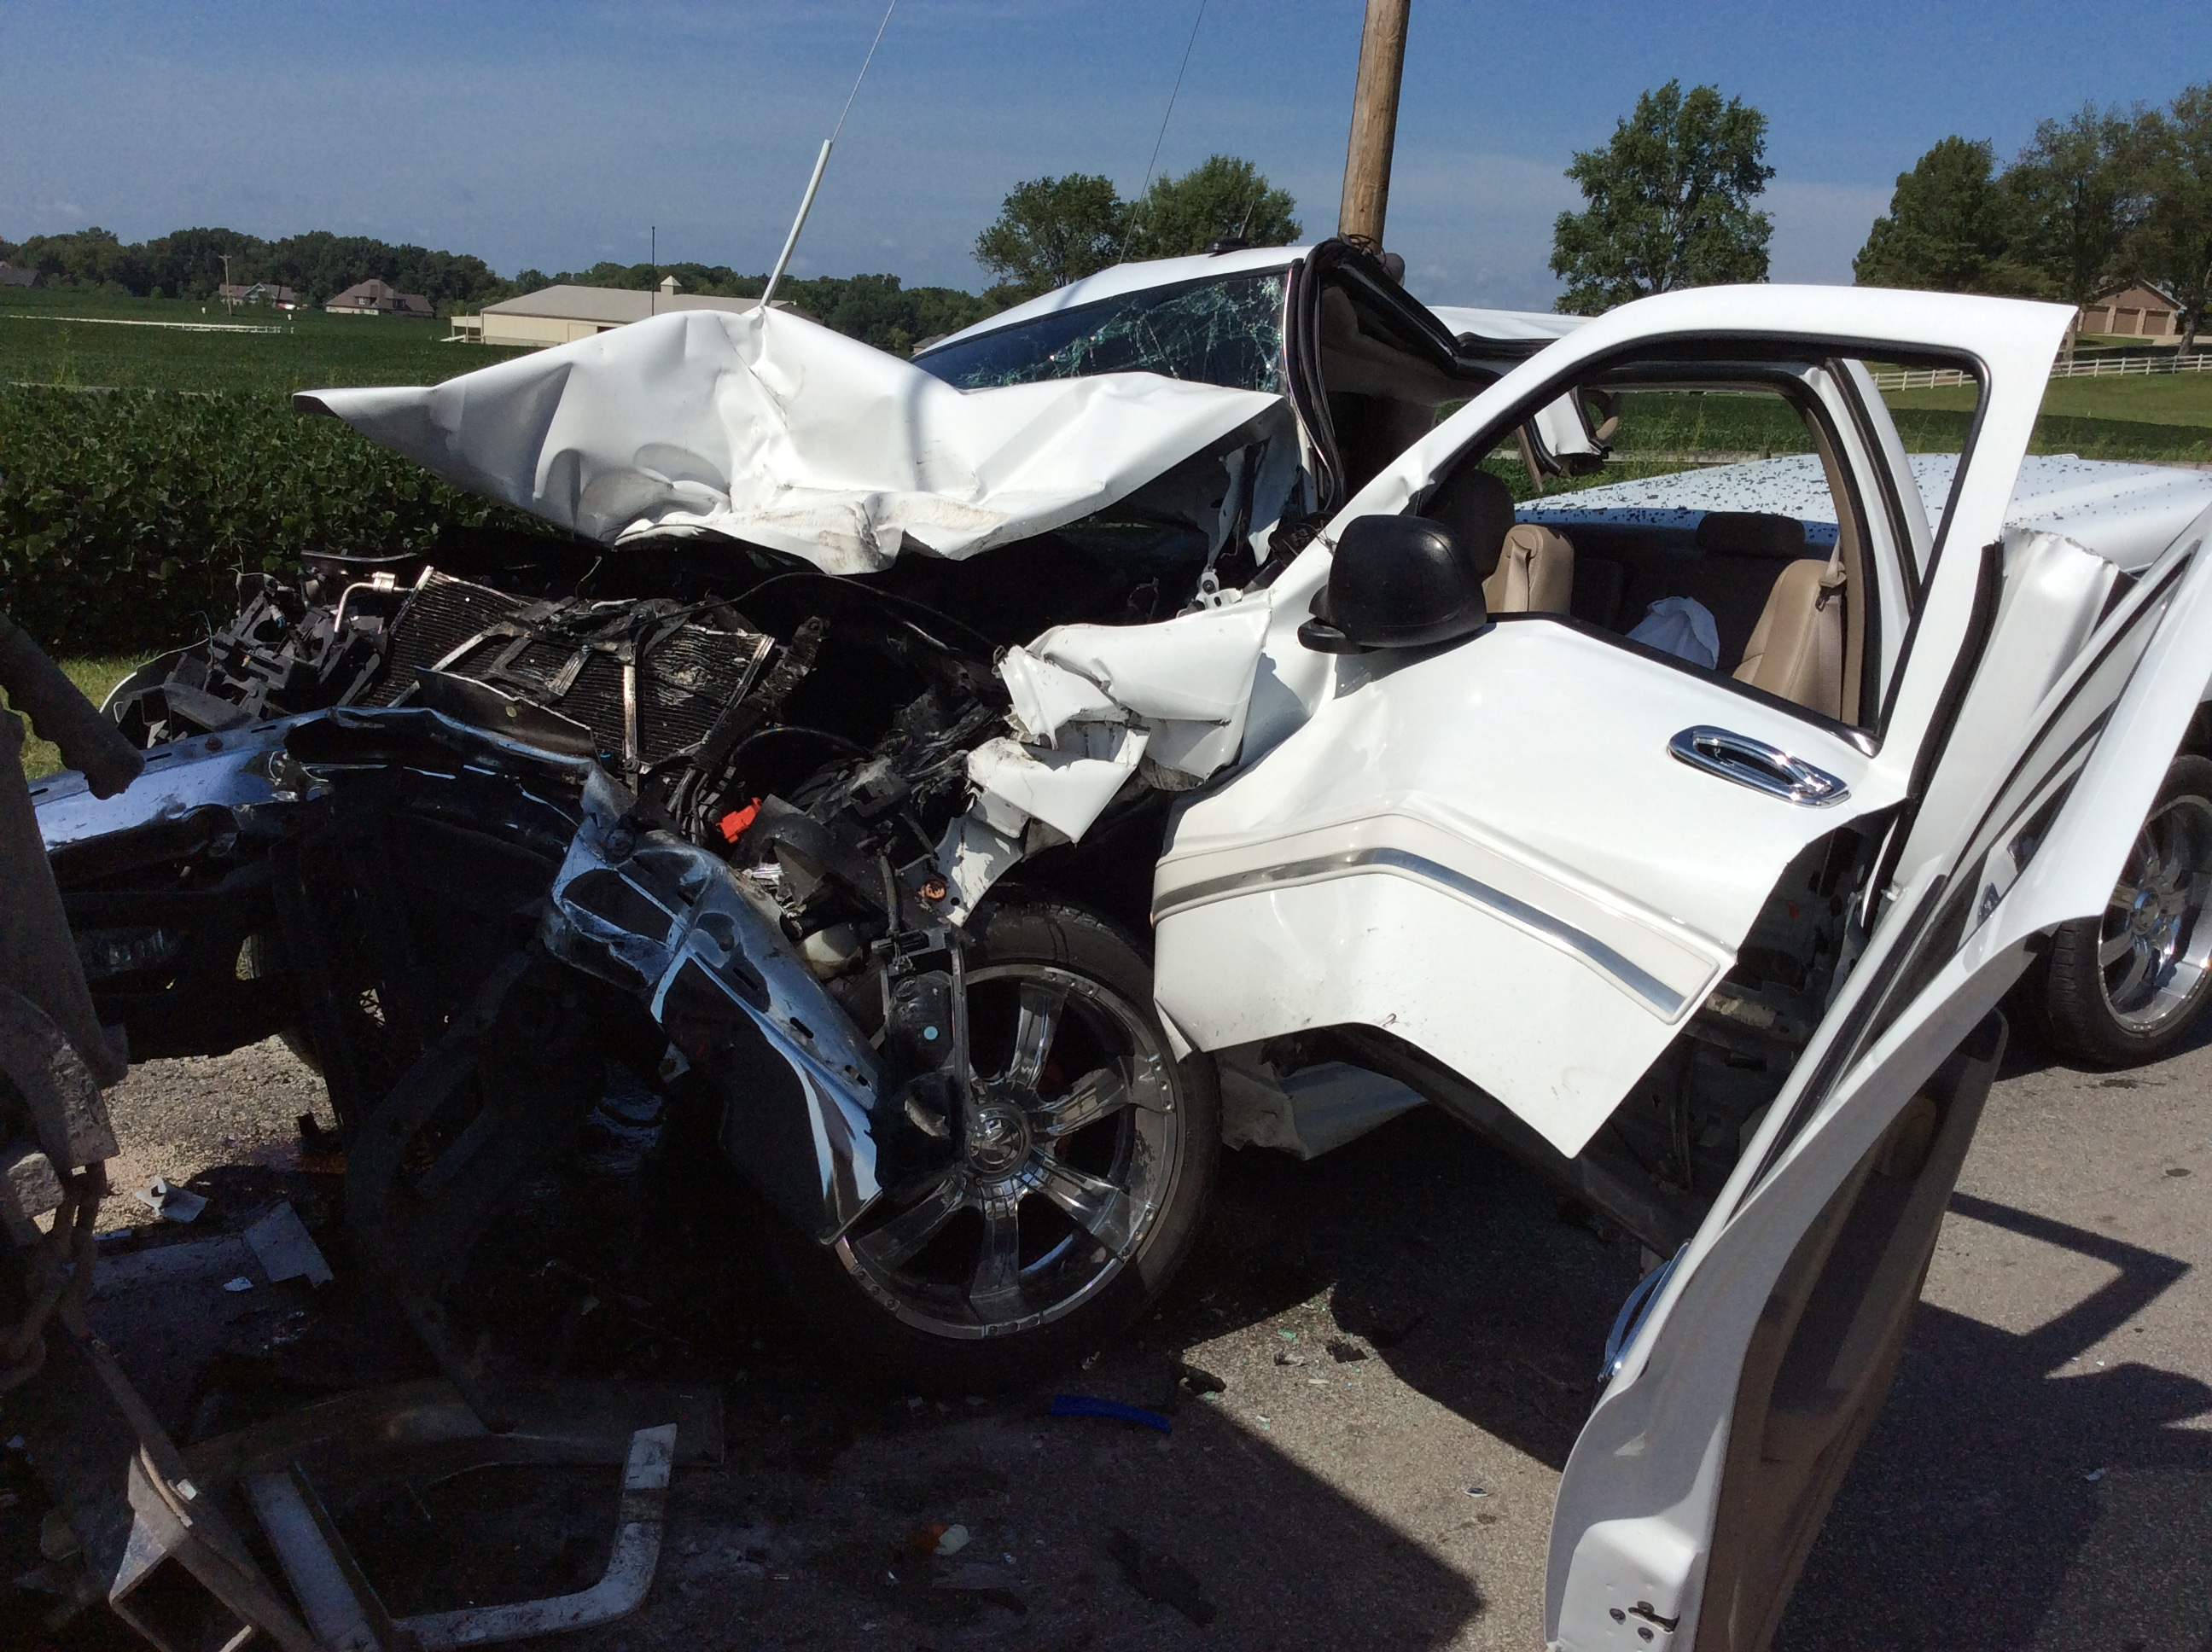 Personal Injury Accident Sends Local Individuals to Hospital